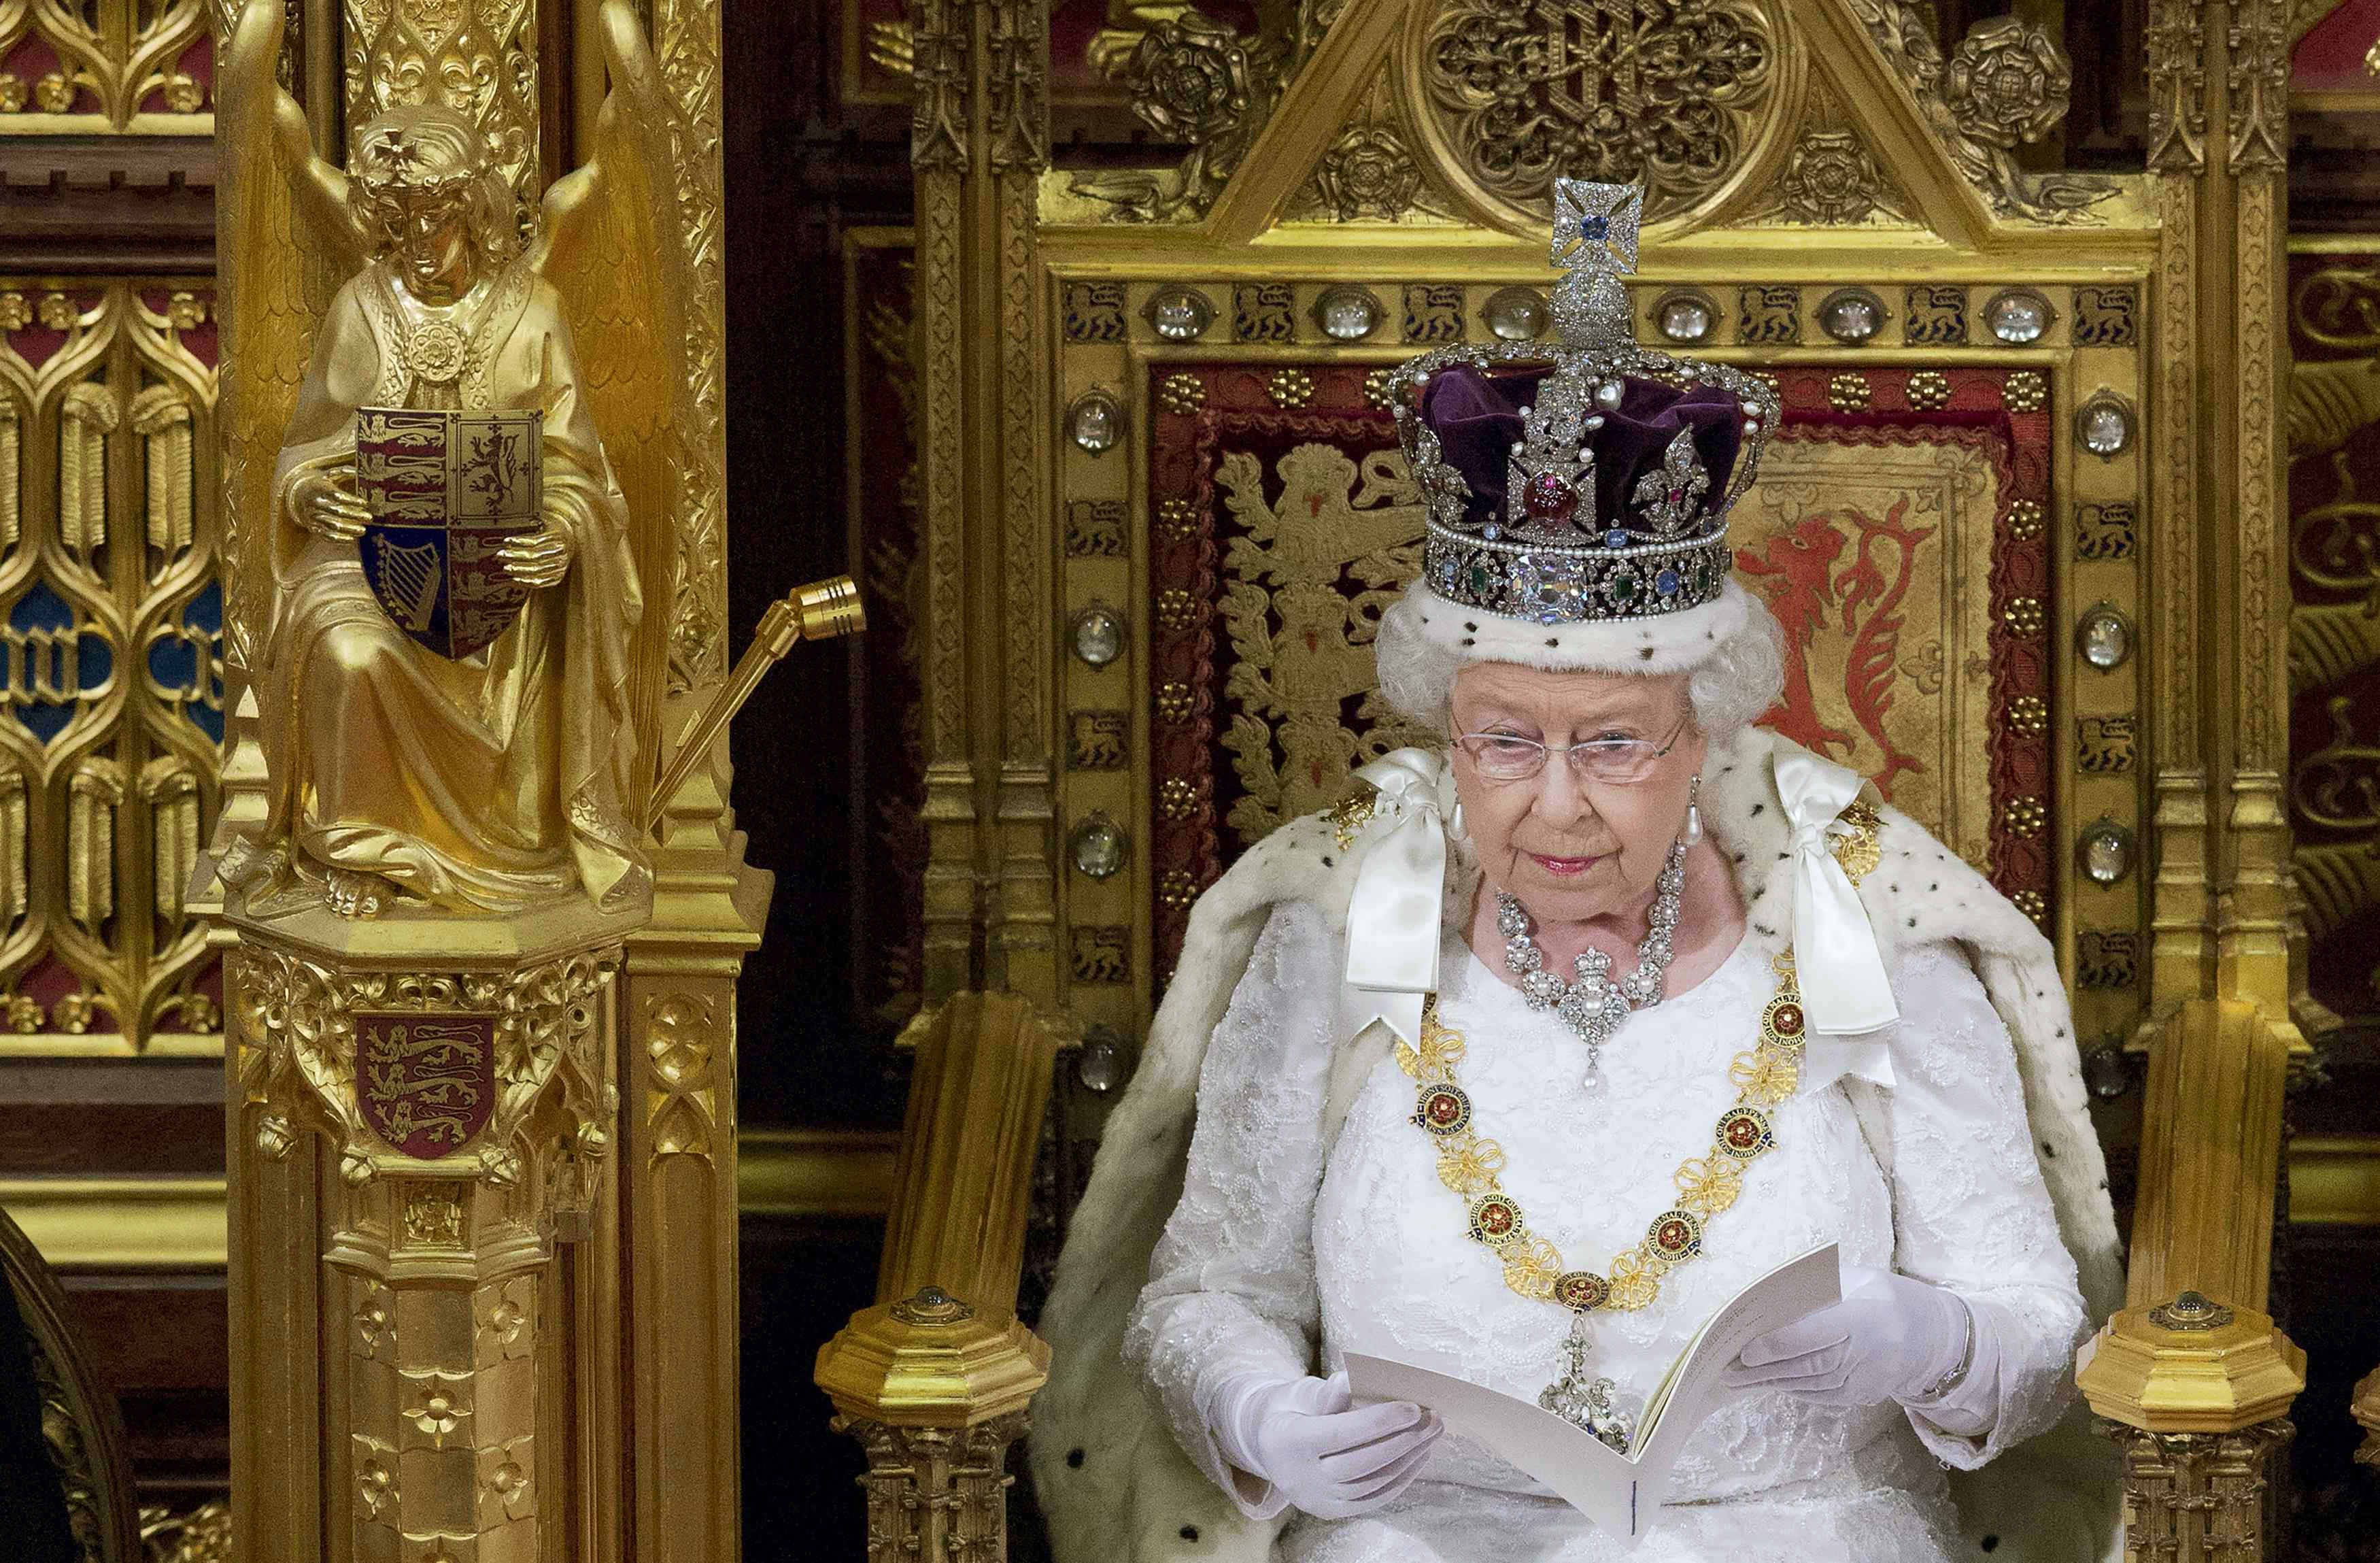 queen elizabeth i one of the greatest monarchs of england Queen elizabeth crowned 'the greatest ever monarch' - but which one  who abdicated, at 14% and king john of england and charles i, who both received 8%  the greatest monarchs queen .